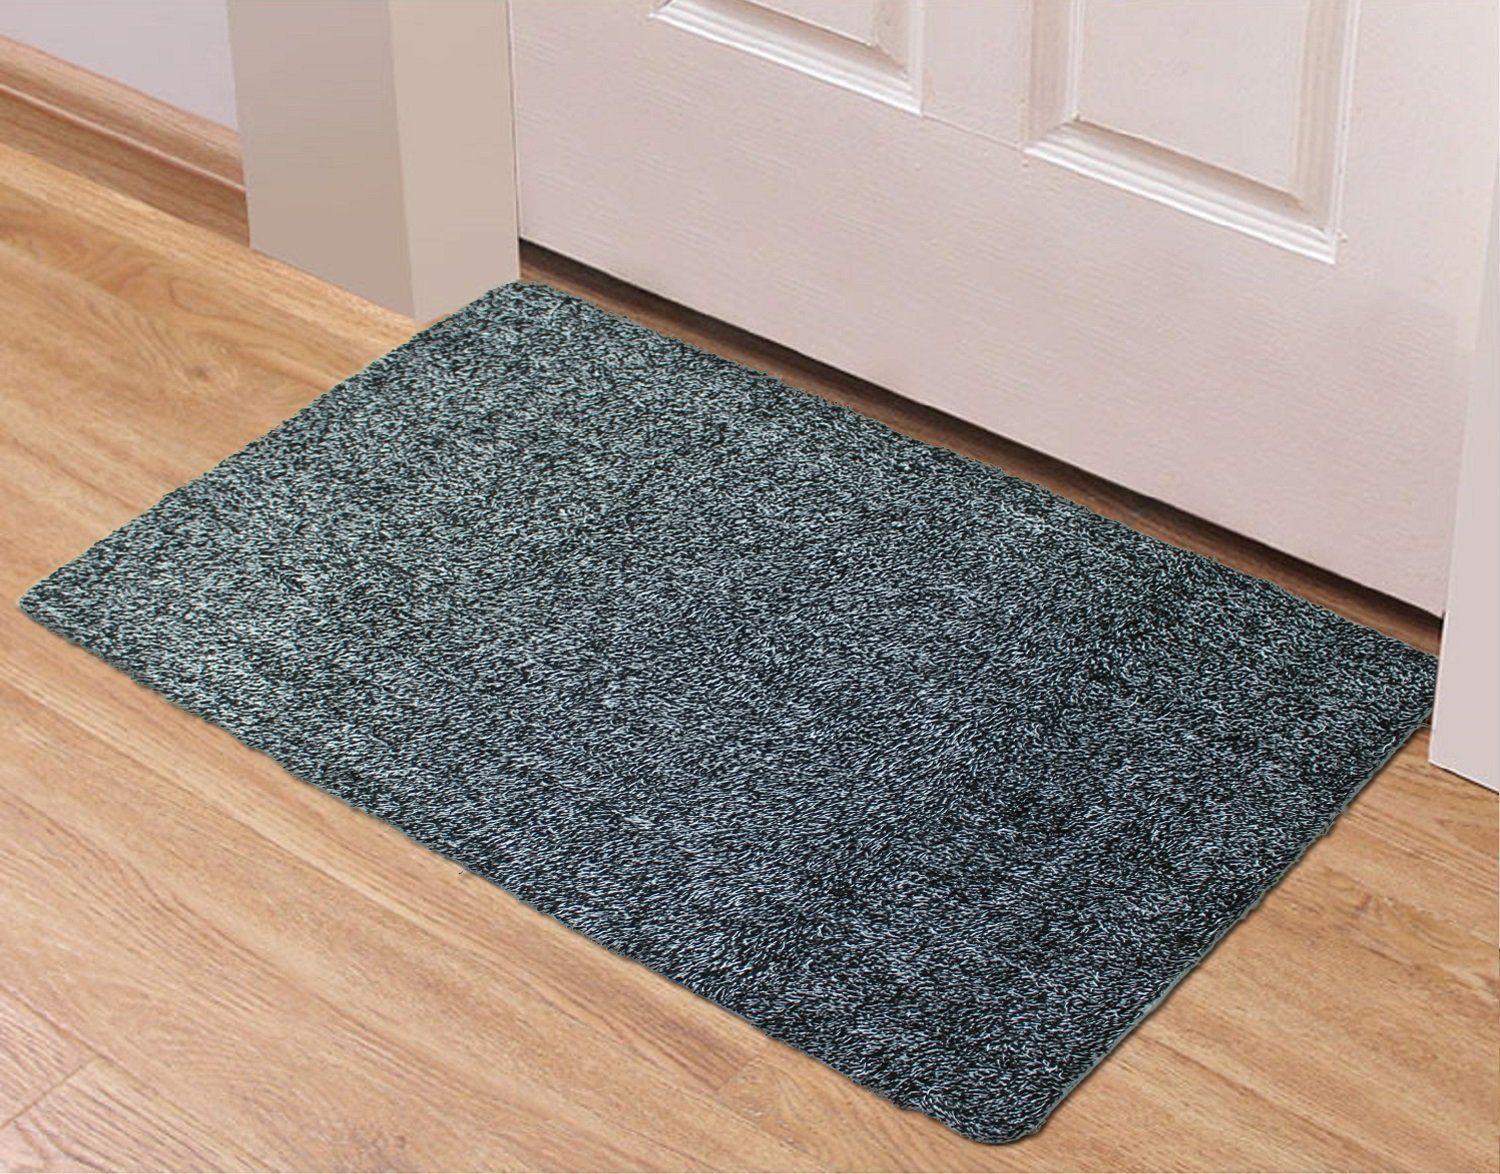 Absorbent door mat burid indoor doormat 17 7 x 29 5 inch water ultra absorbent front door mats